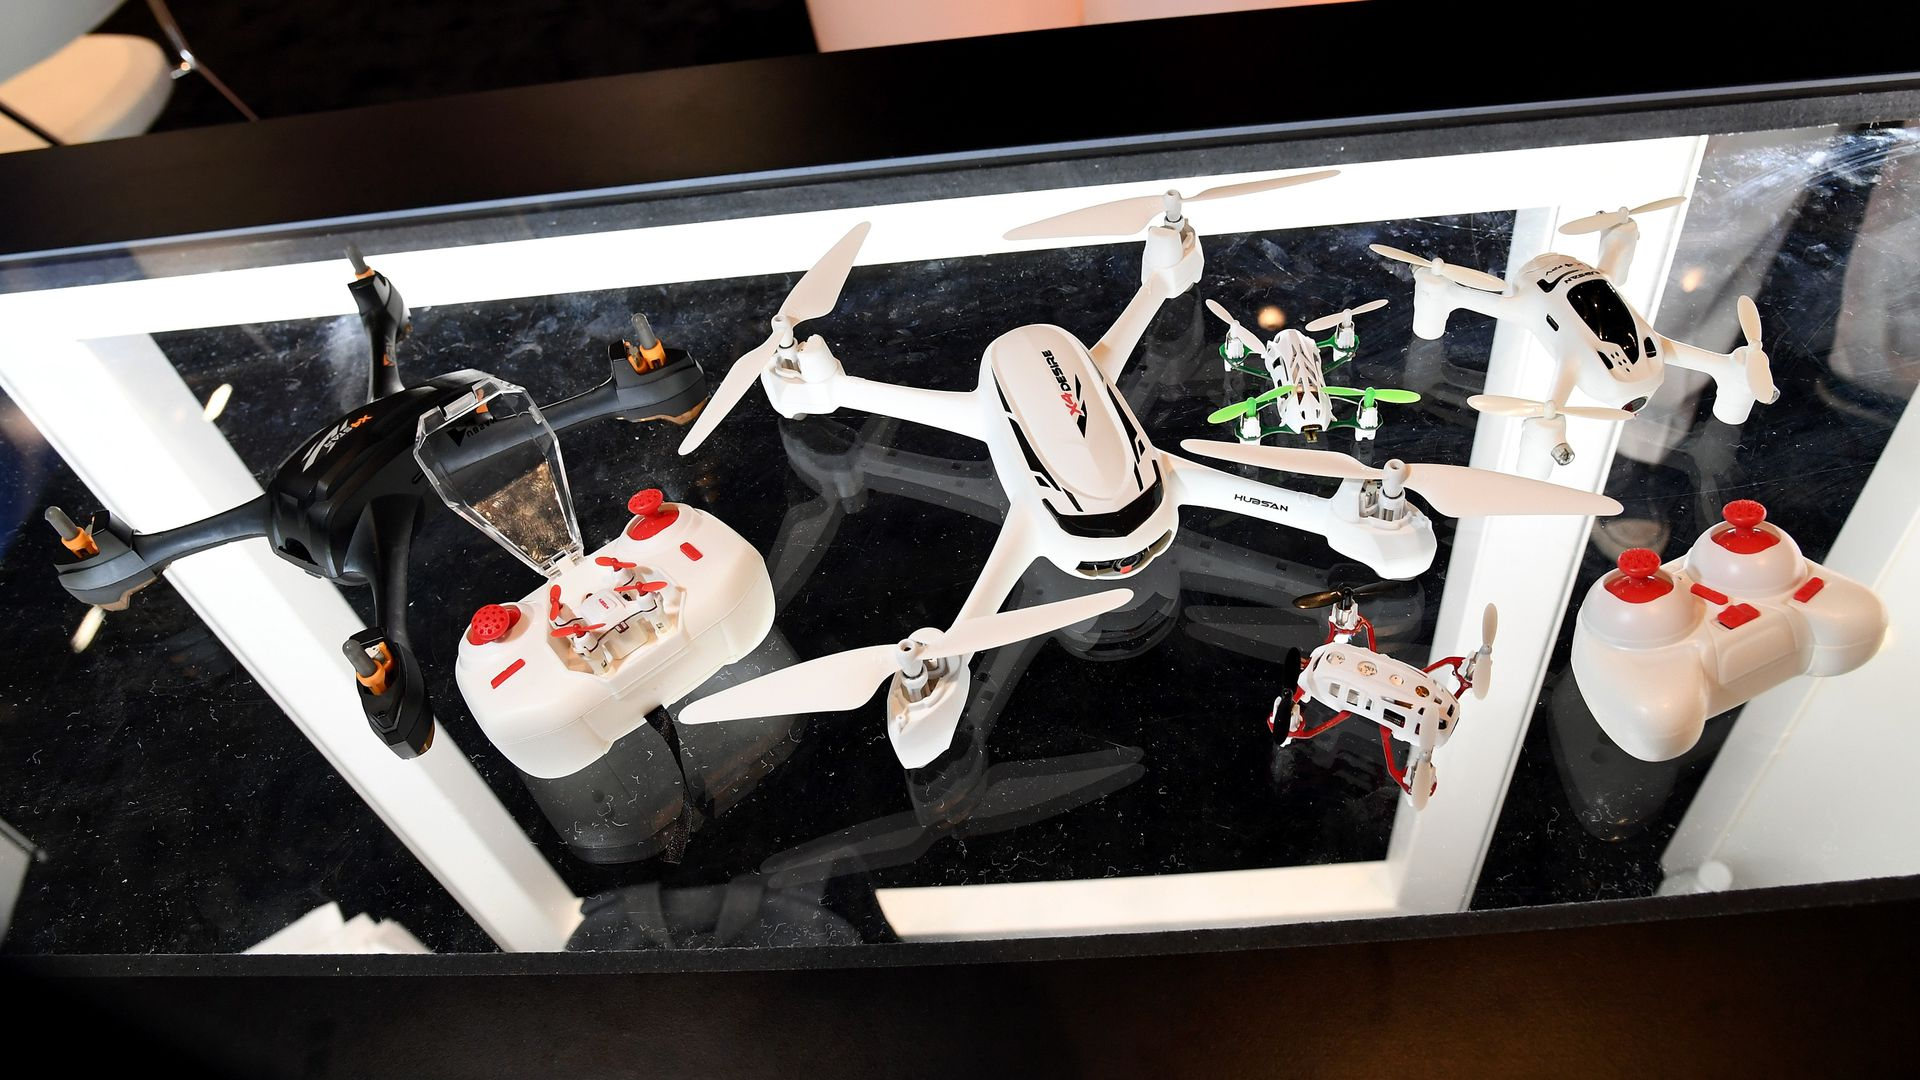 A table with remote controlled drones on them.